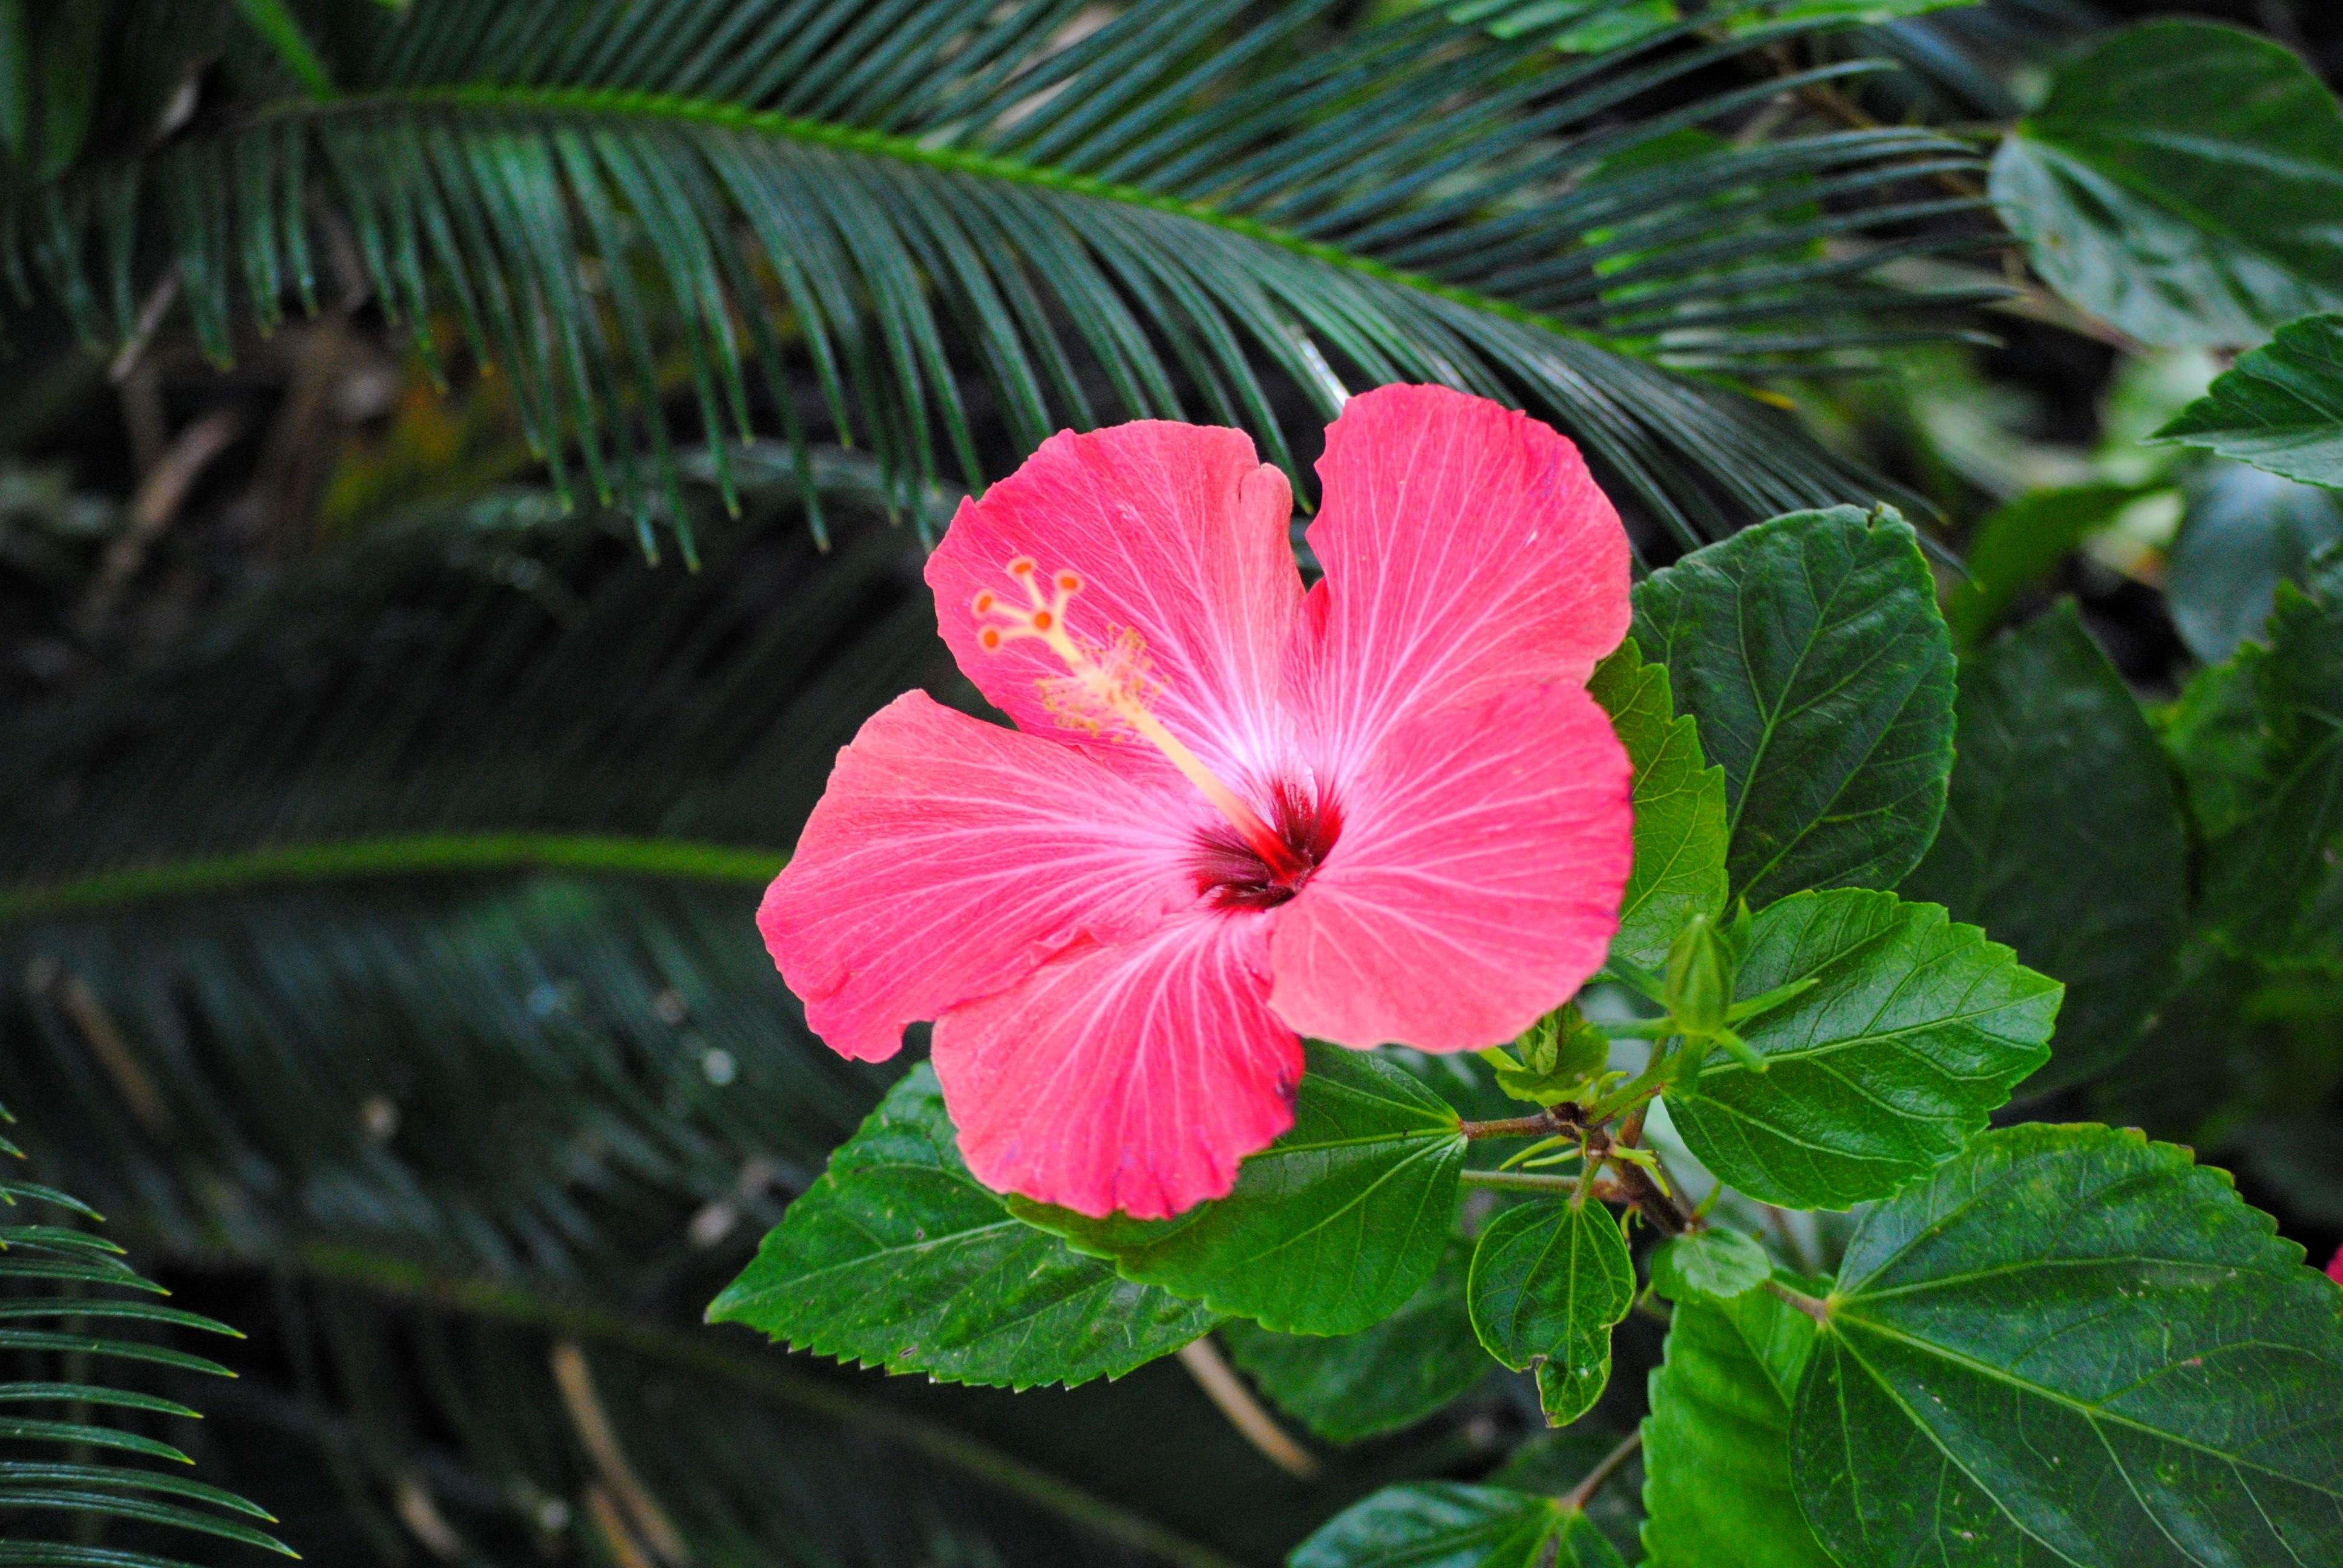 hibiscus wallpapers, photos and desktop backgrounds up to 8k